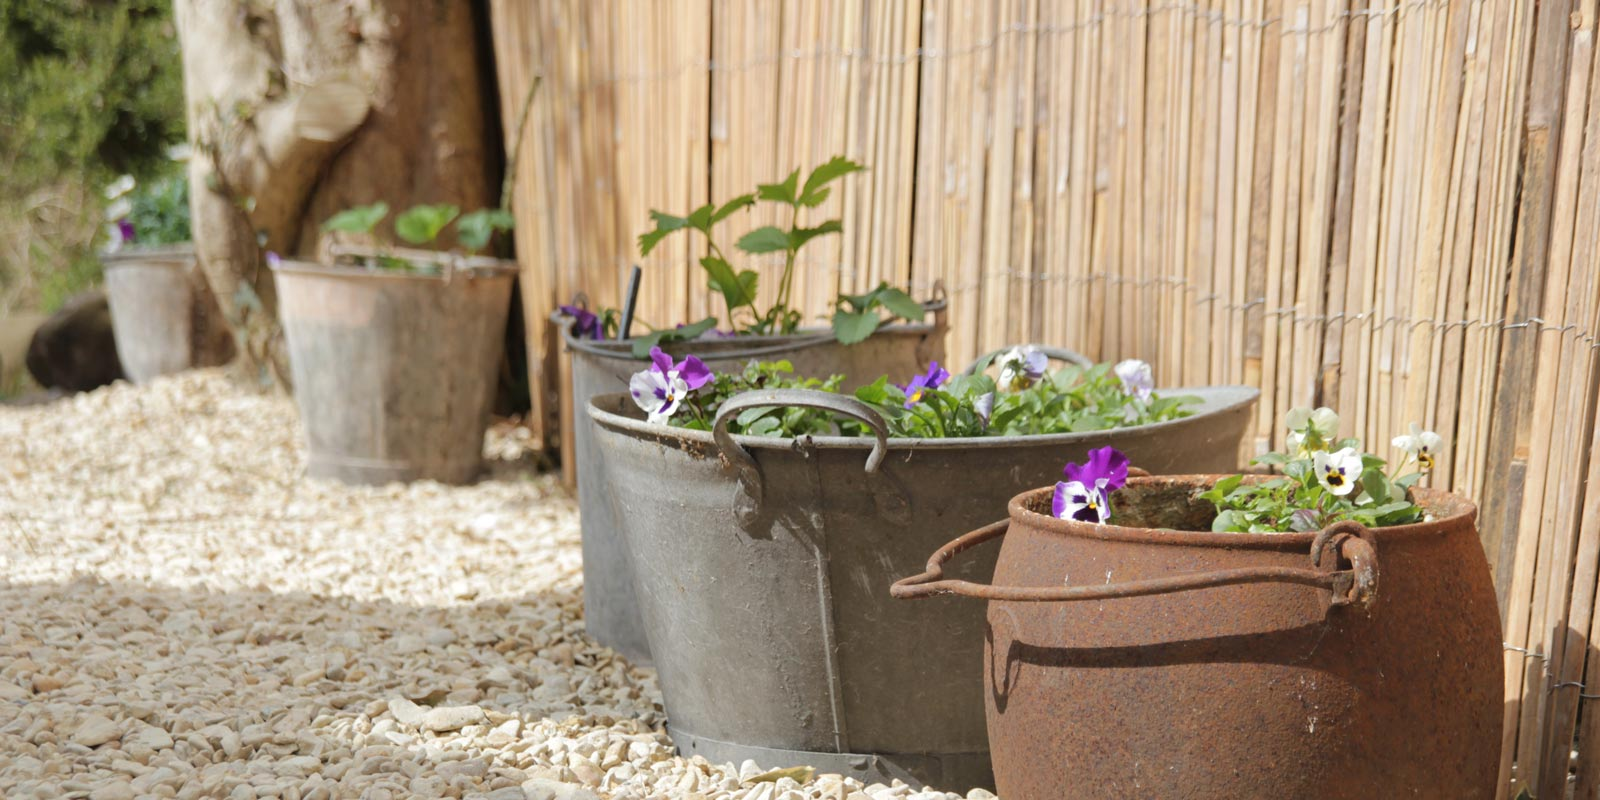 Reclaimed pots used for flowers in the garden